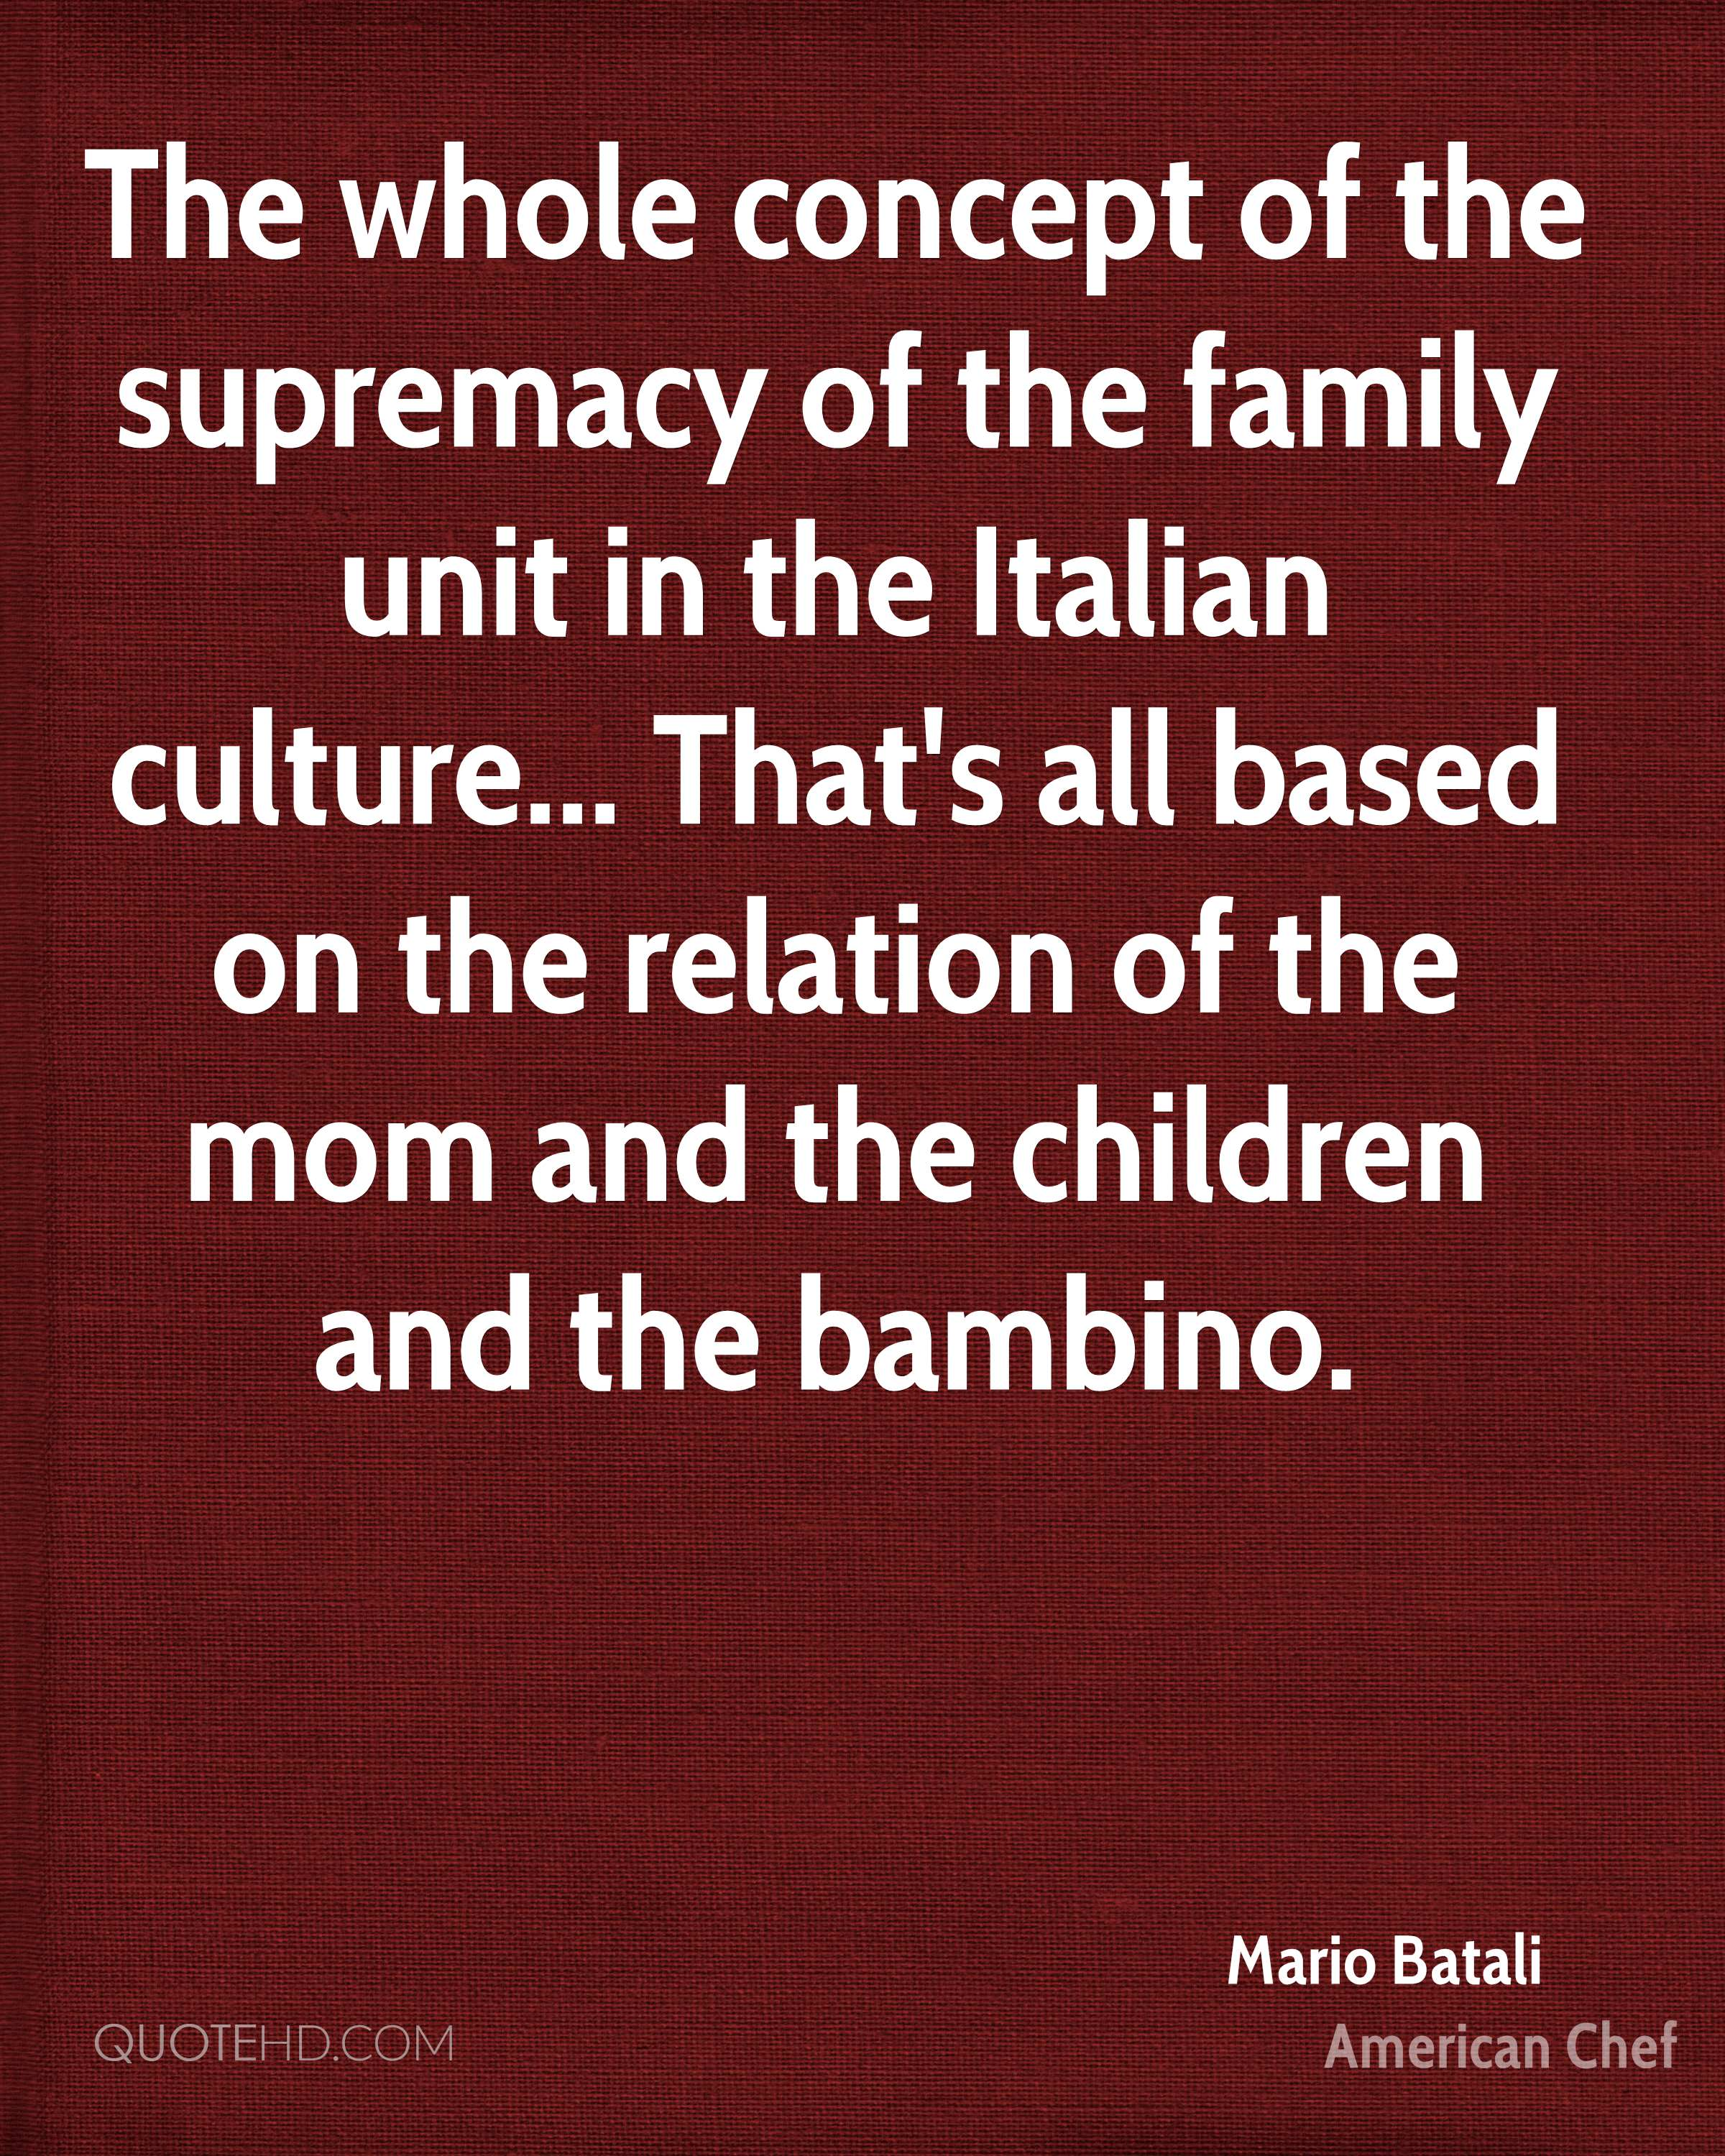 The whole concept of the supremacy of the family unit in the Italian culture... That's all based on the relation of the mom and the children and the bambino.